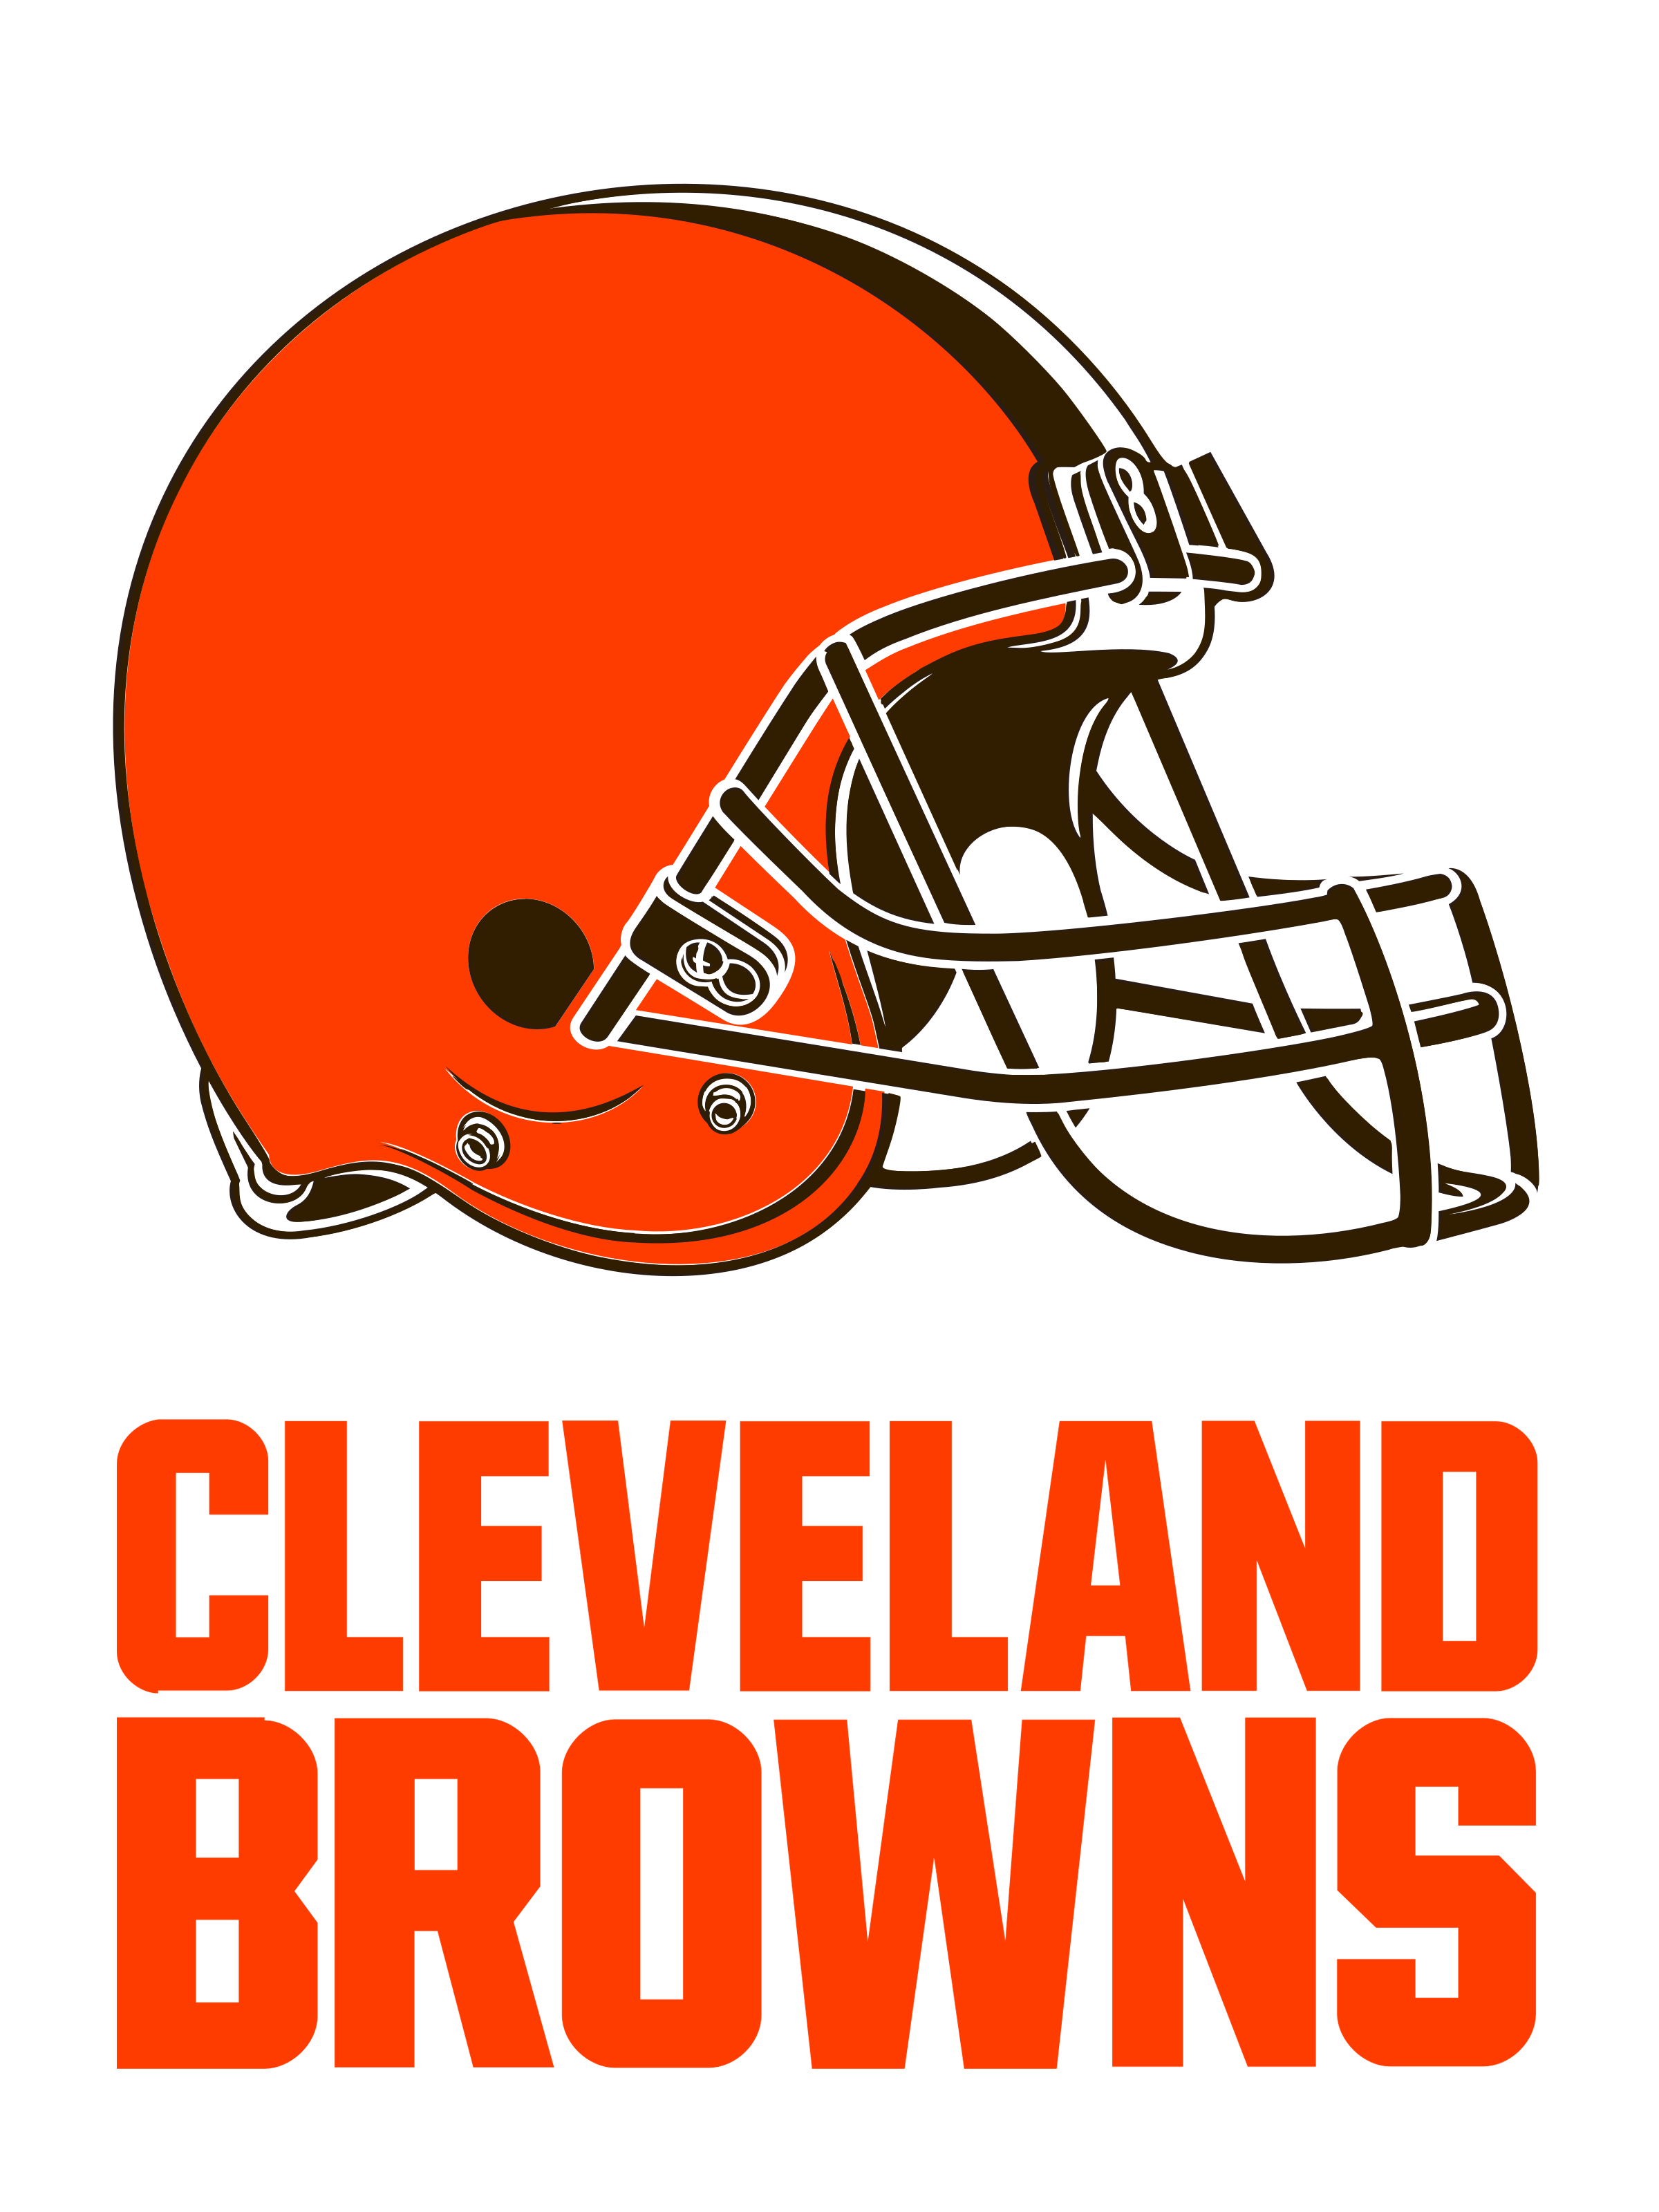 Cleveland browns logo png. Transparent svg vector freebie